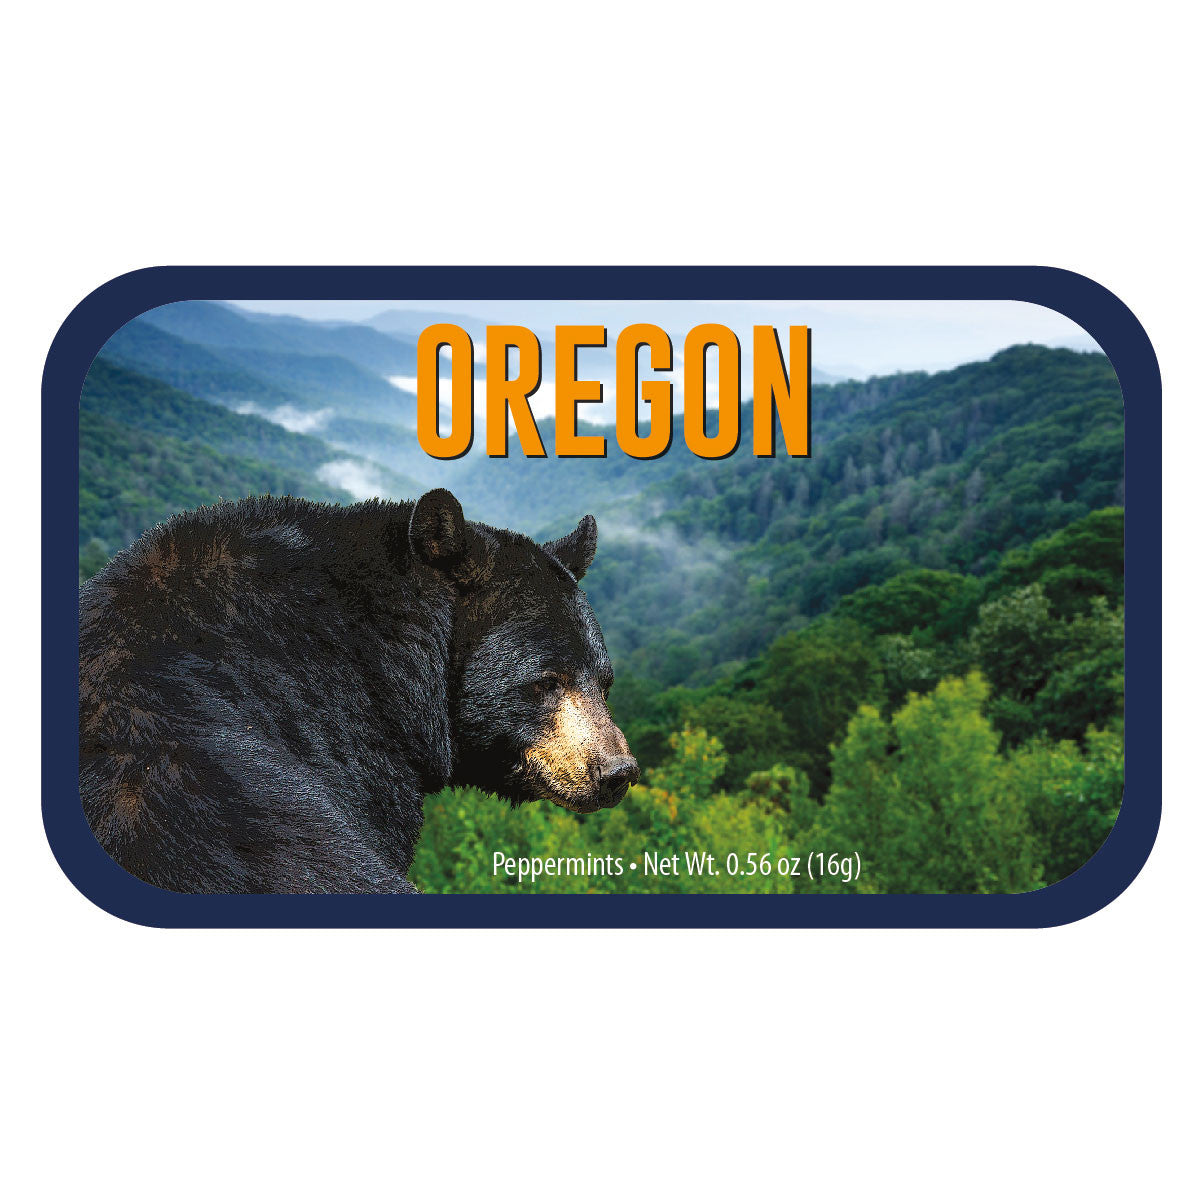 Black Bear Oregon - 0260S